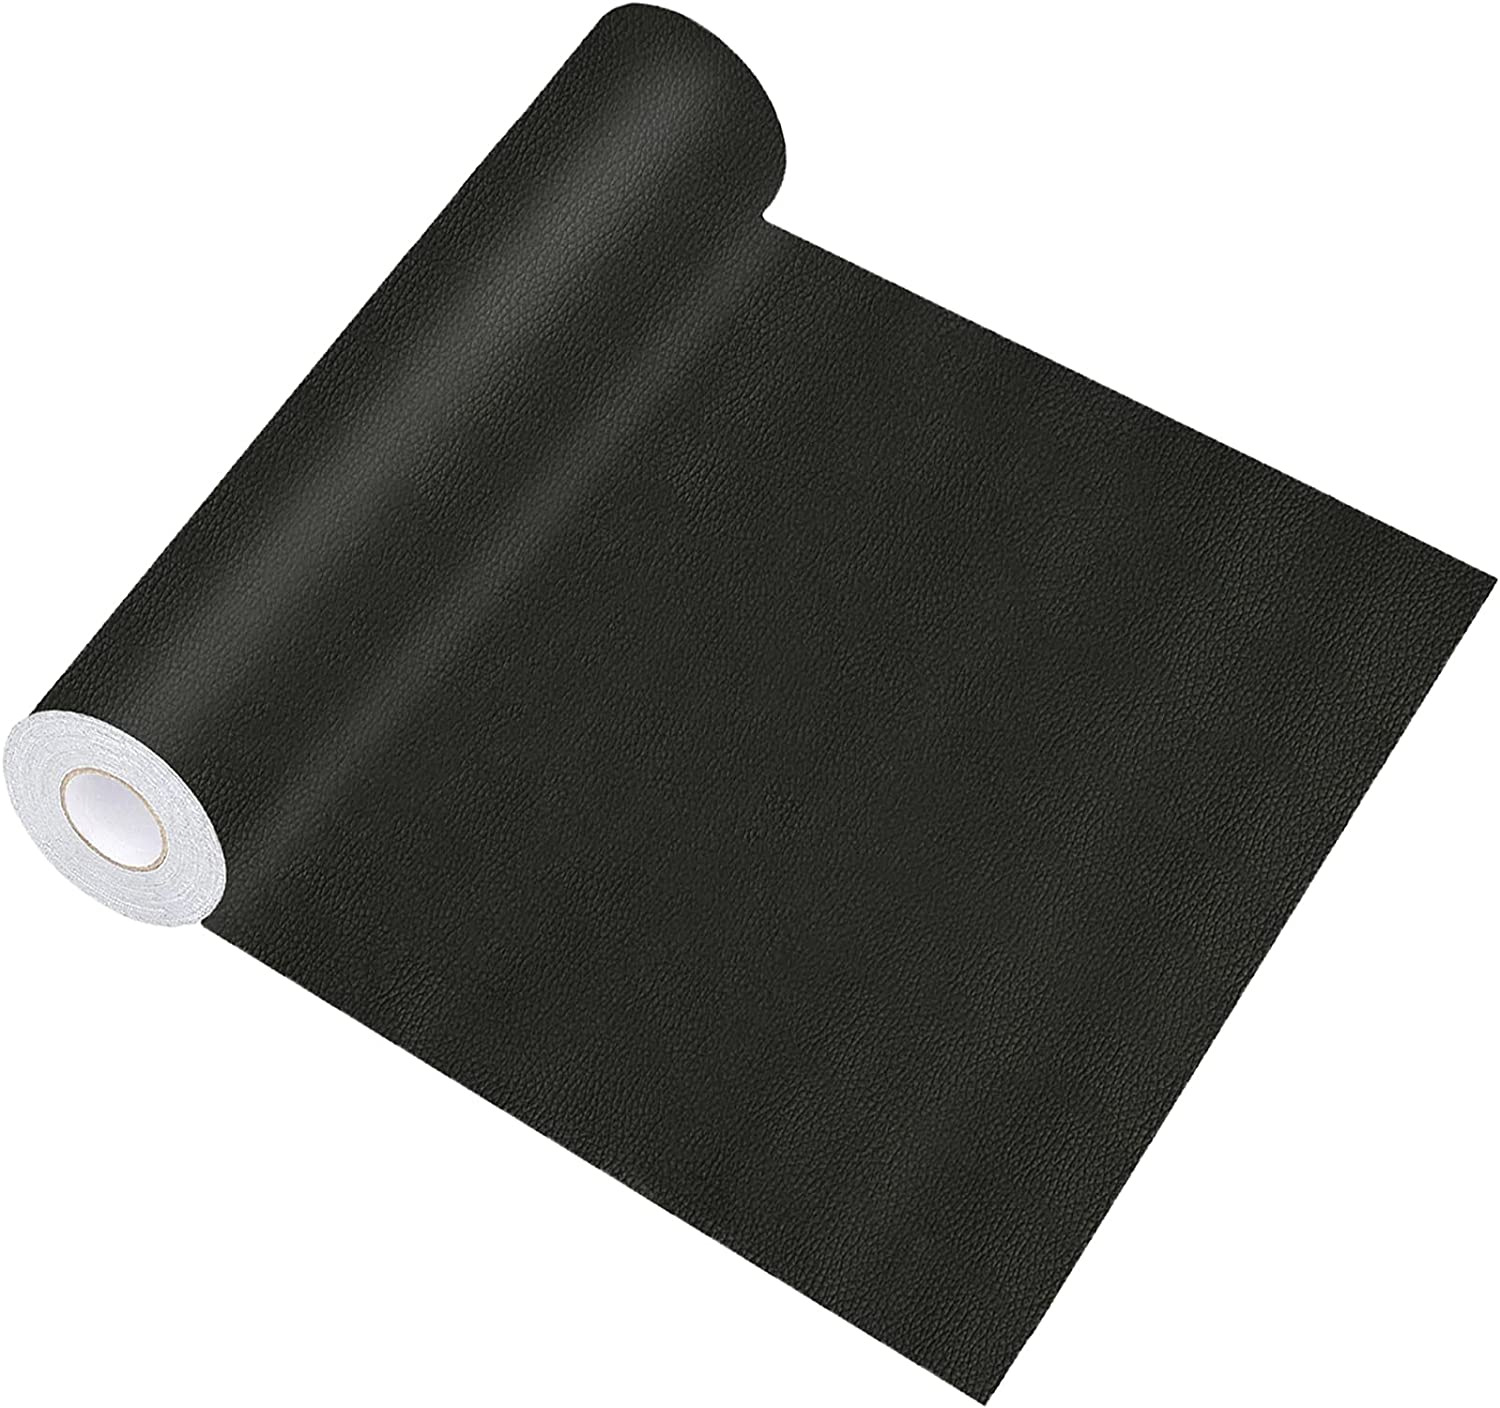 Leather Repair Patch for Couches, 17X157 inch Self-Adhesive reupholster Tape Patches kit for Furniture Sofa Vinyl Car Seats Couch Chairs Jackets First Aid Patch Fix Tear Kit (Black, 17X157 inch)